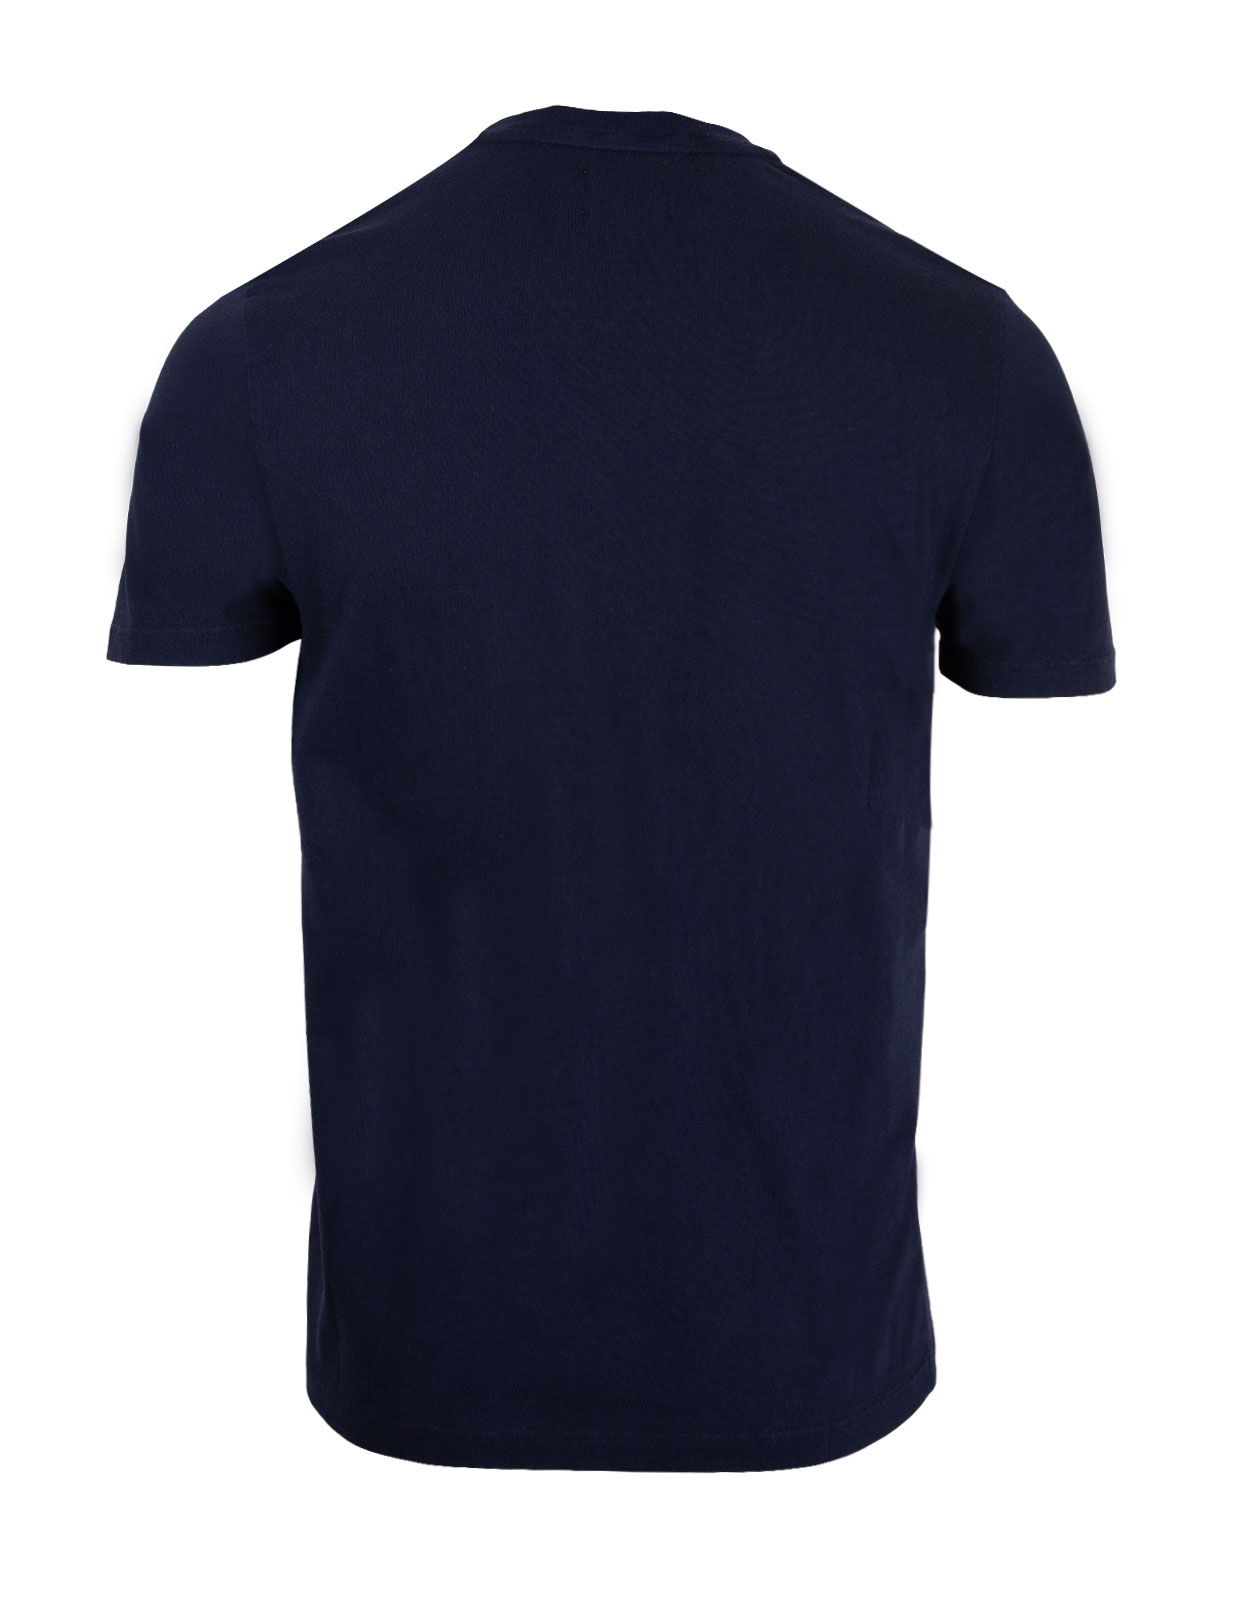 T-Shirt Blue Navy